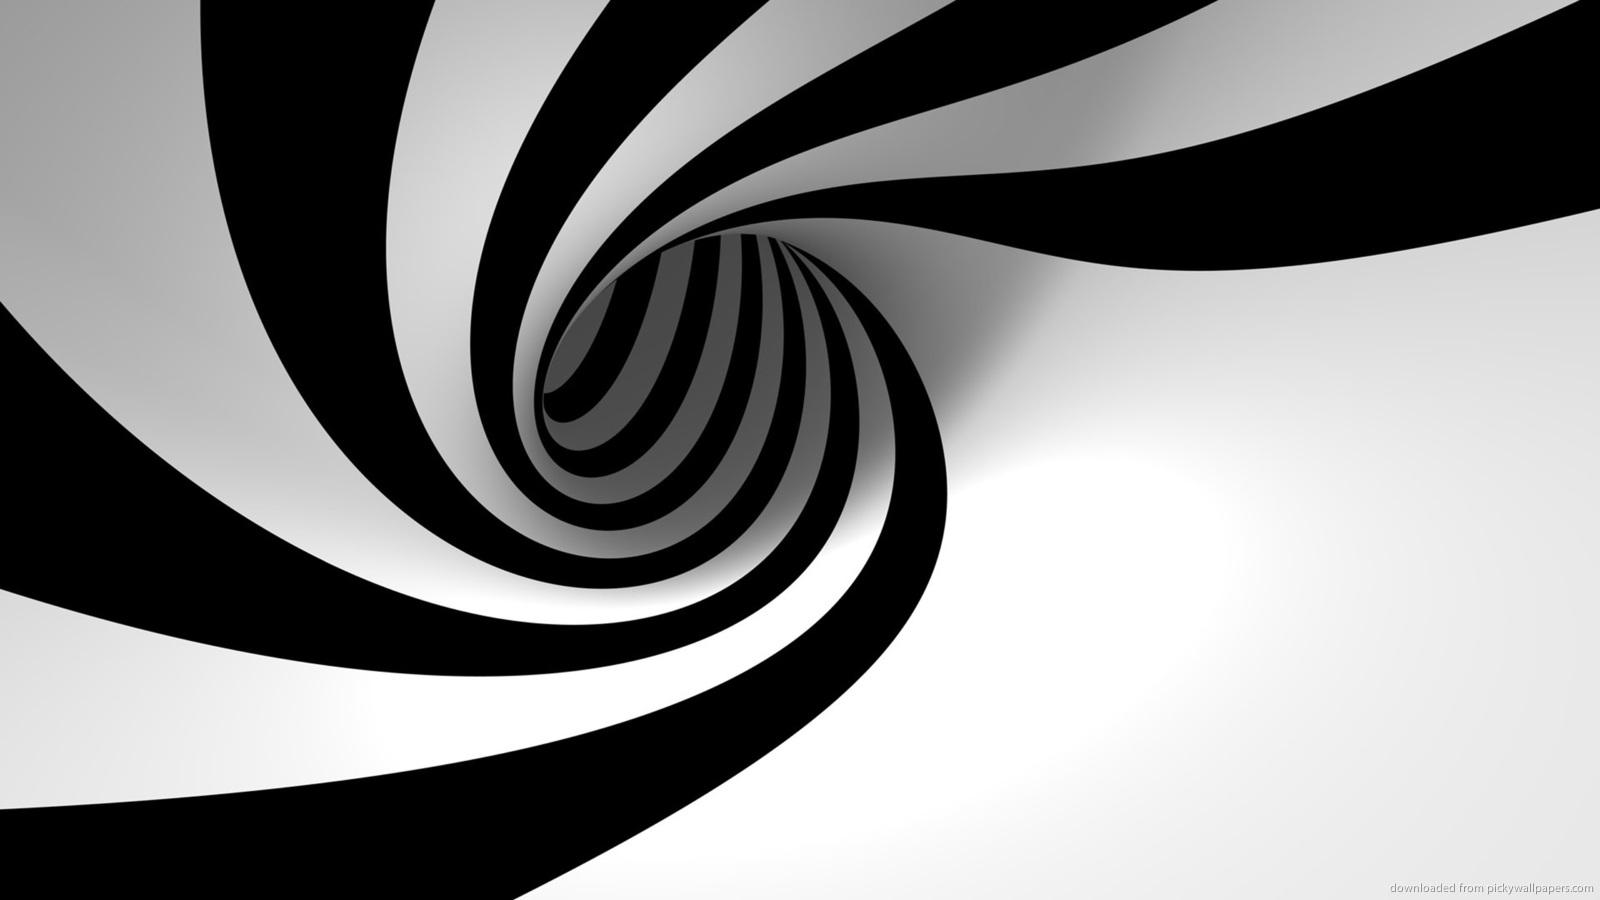 Download 1600x900 3D Black And White Twirl Wallpaper 1600x900